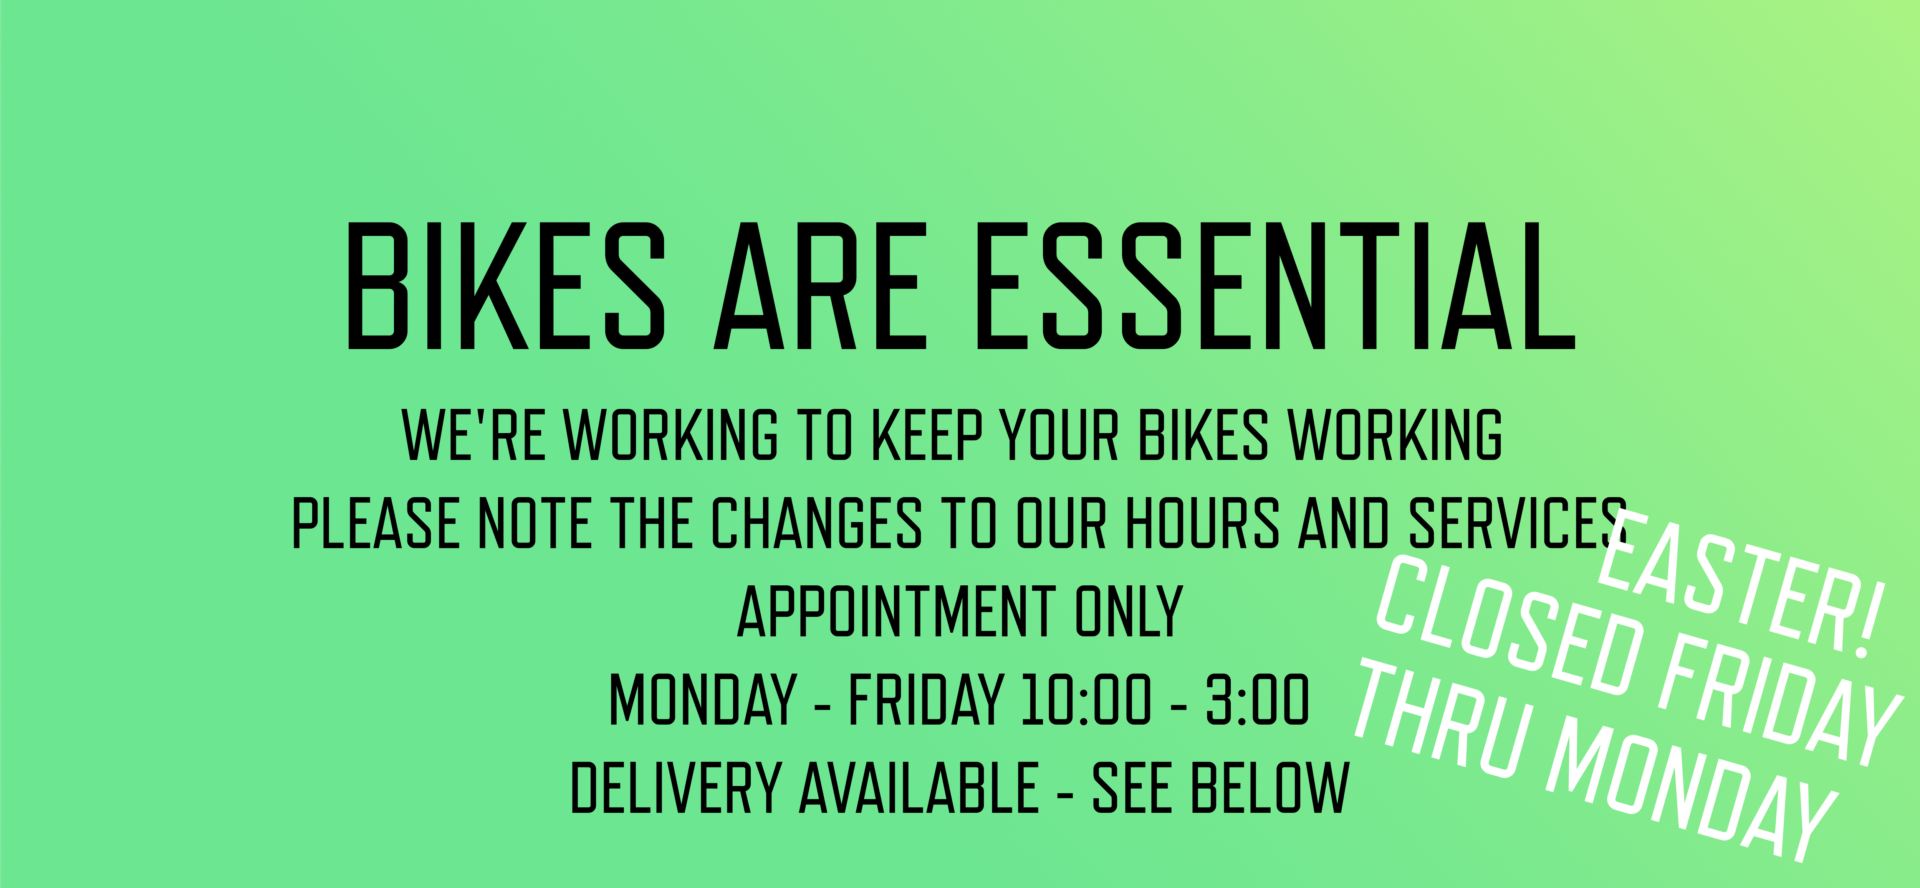 Full Service Bike Shop in Downtown Powell River